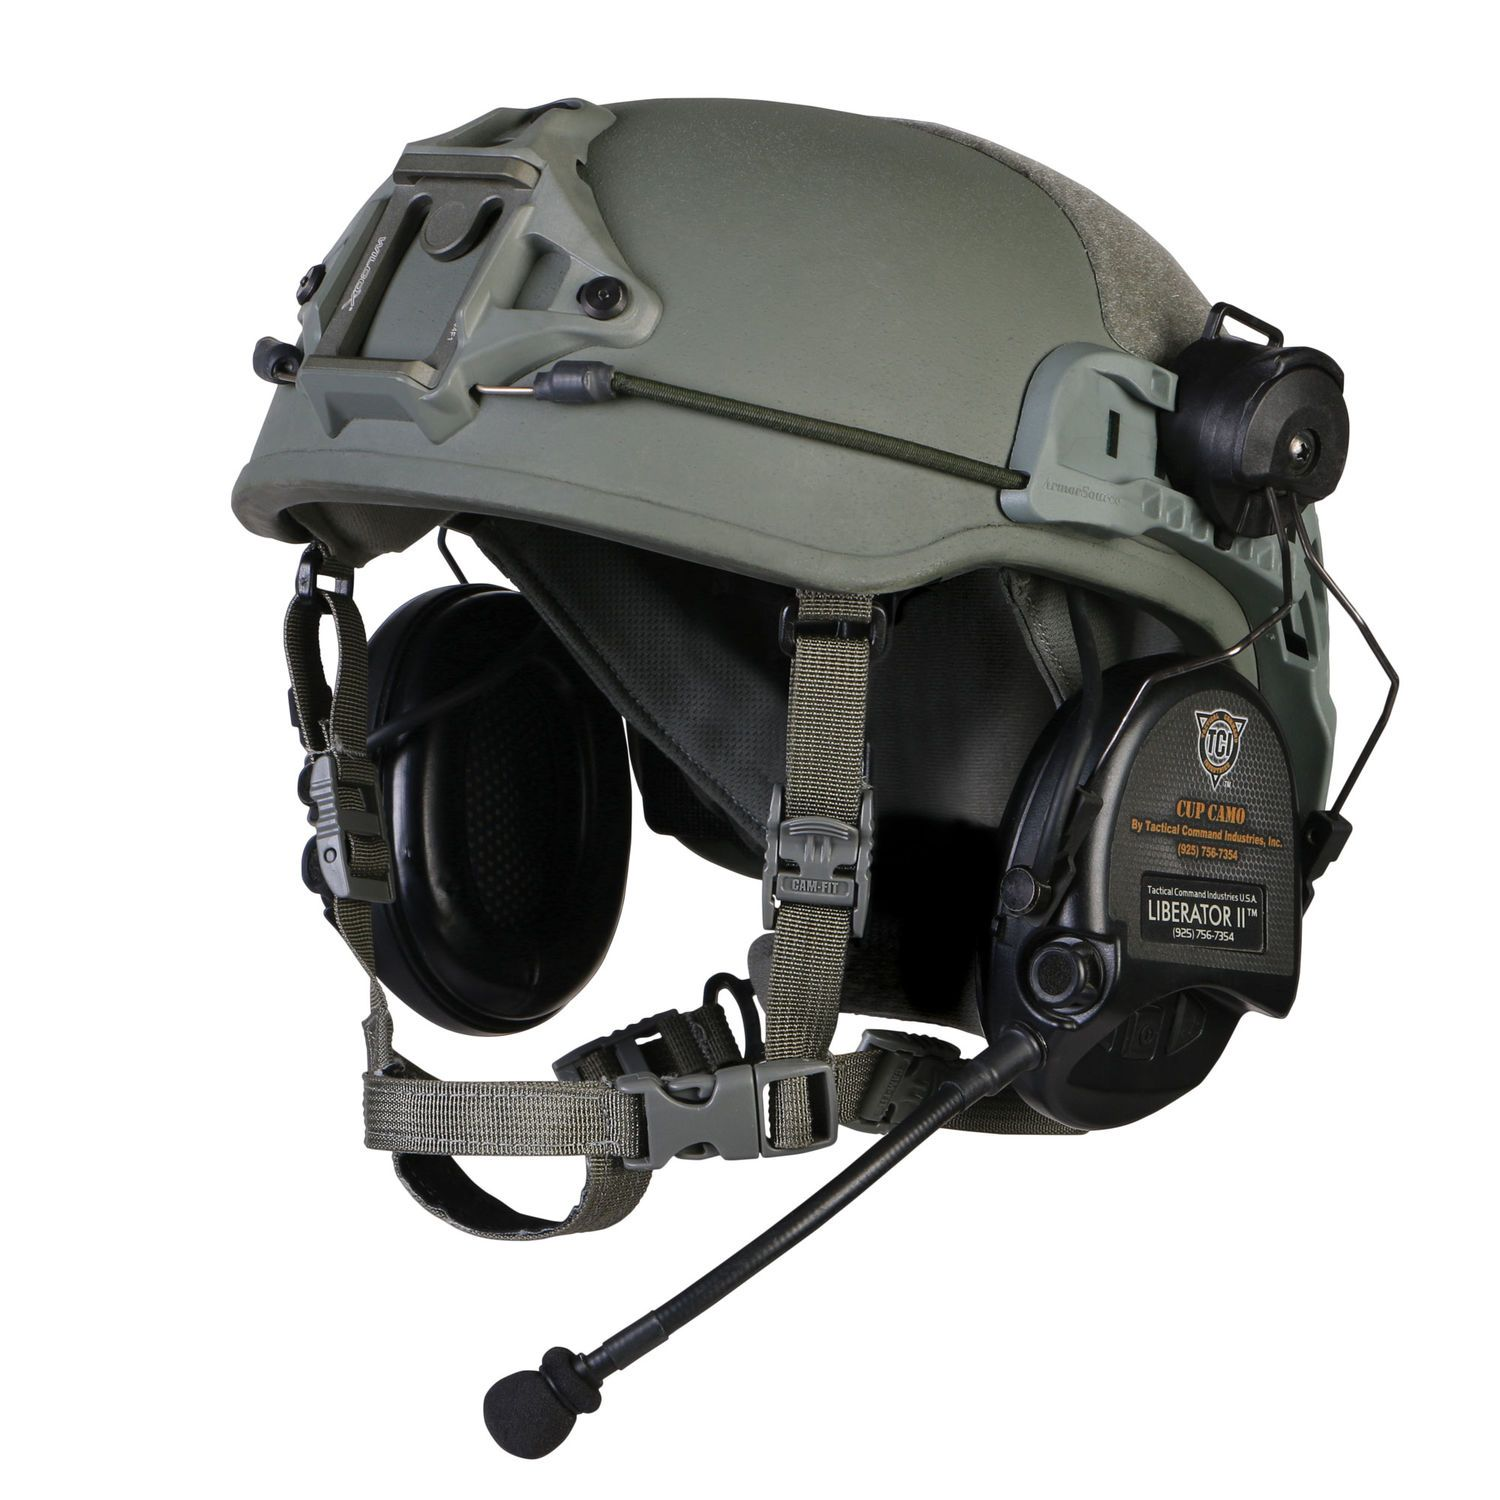 Liberator Ii Tactical Headset With Integrated Digital